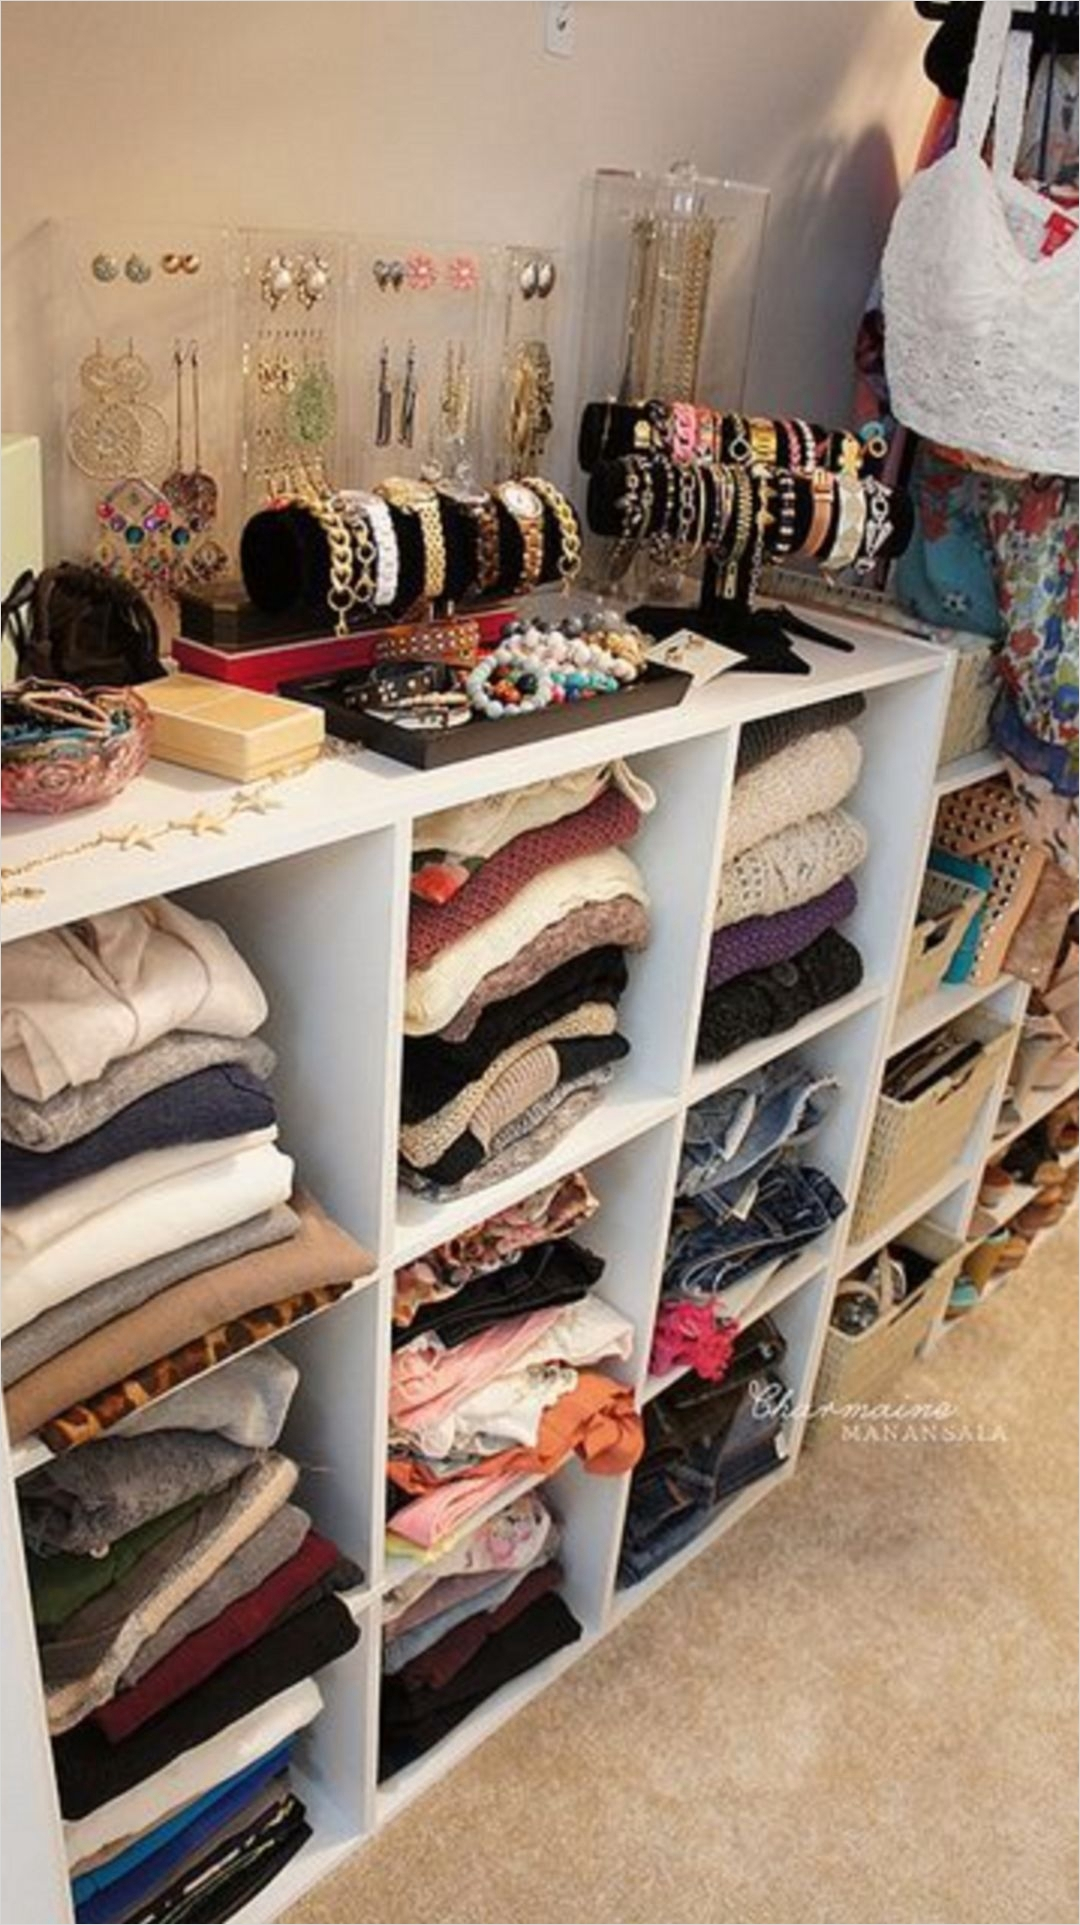 42 Creative Small Room Storage Ideas 19 Wonderful Storage Ideas for Small Space 284 — Fres Hoom 5